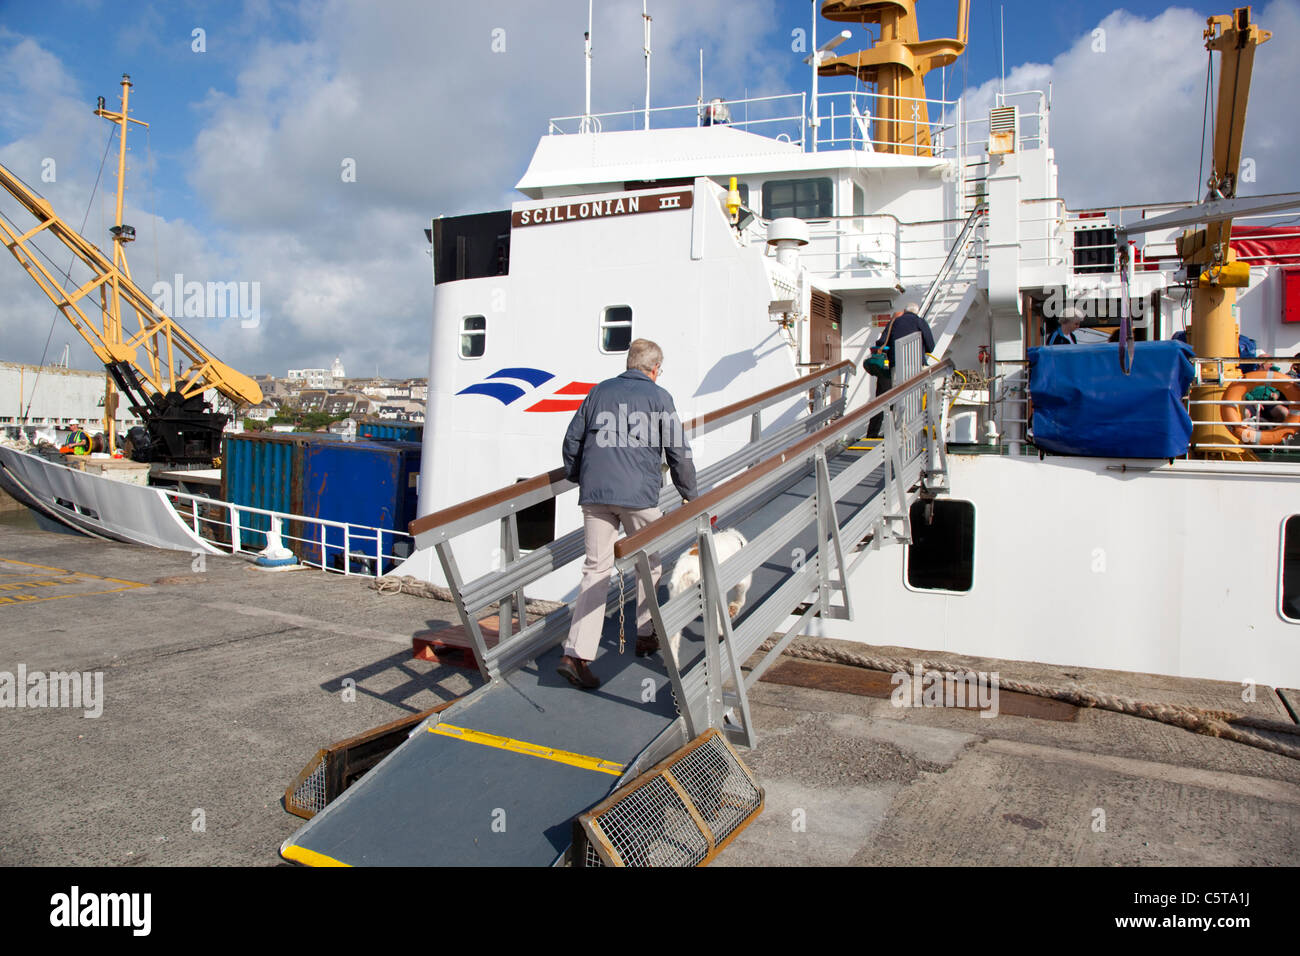 Scillonian III at St Mary;s harbour; Isles of Scilly - Stock Image